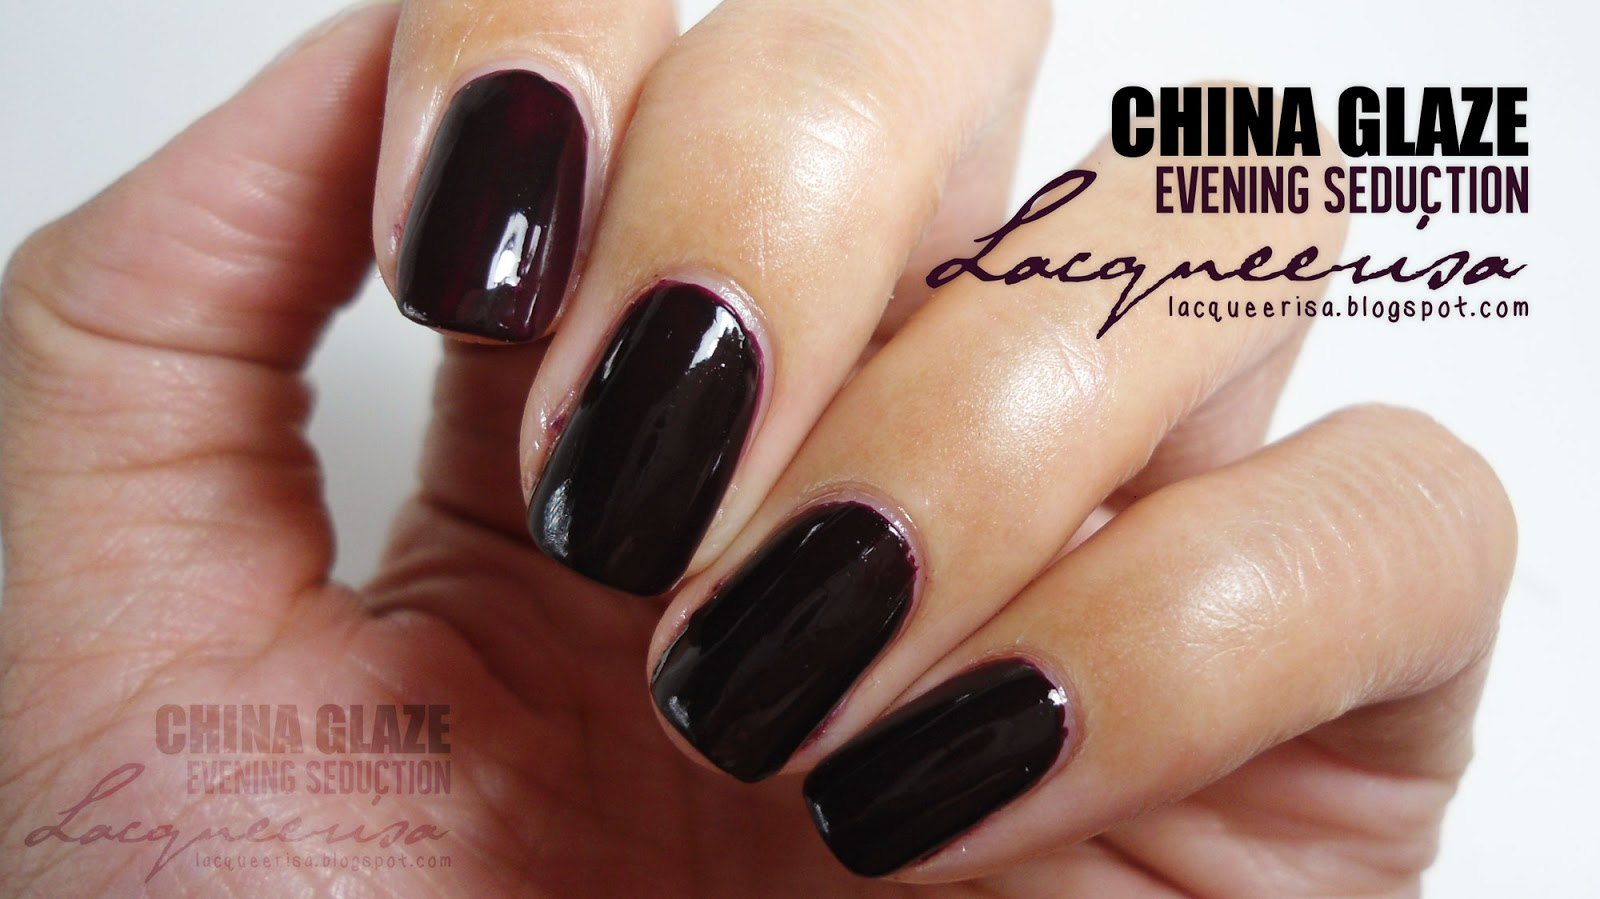 Lacqueerisa: China Glaze Evening Seduction